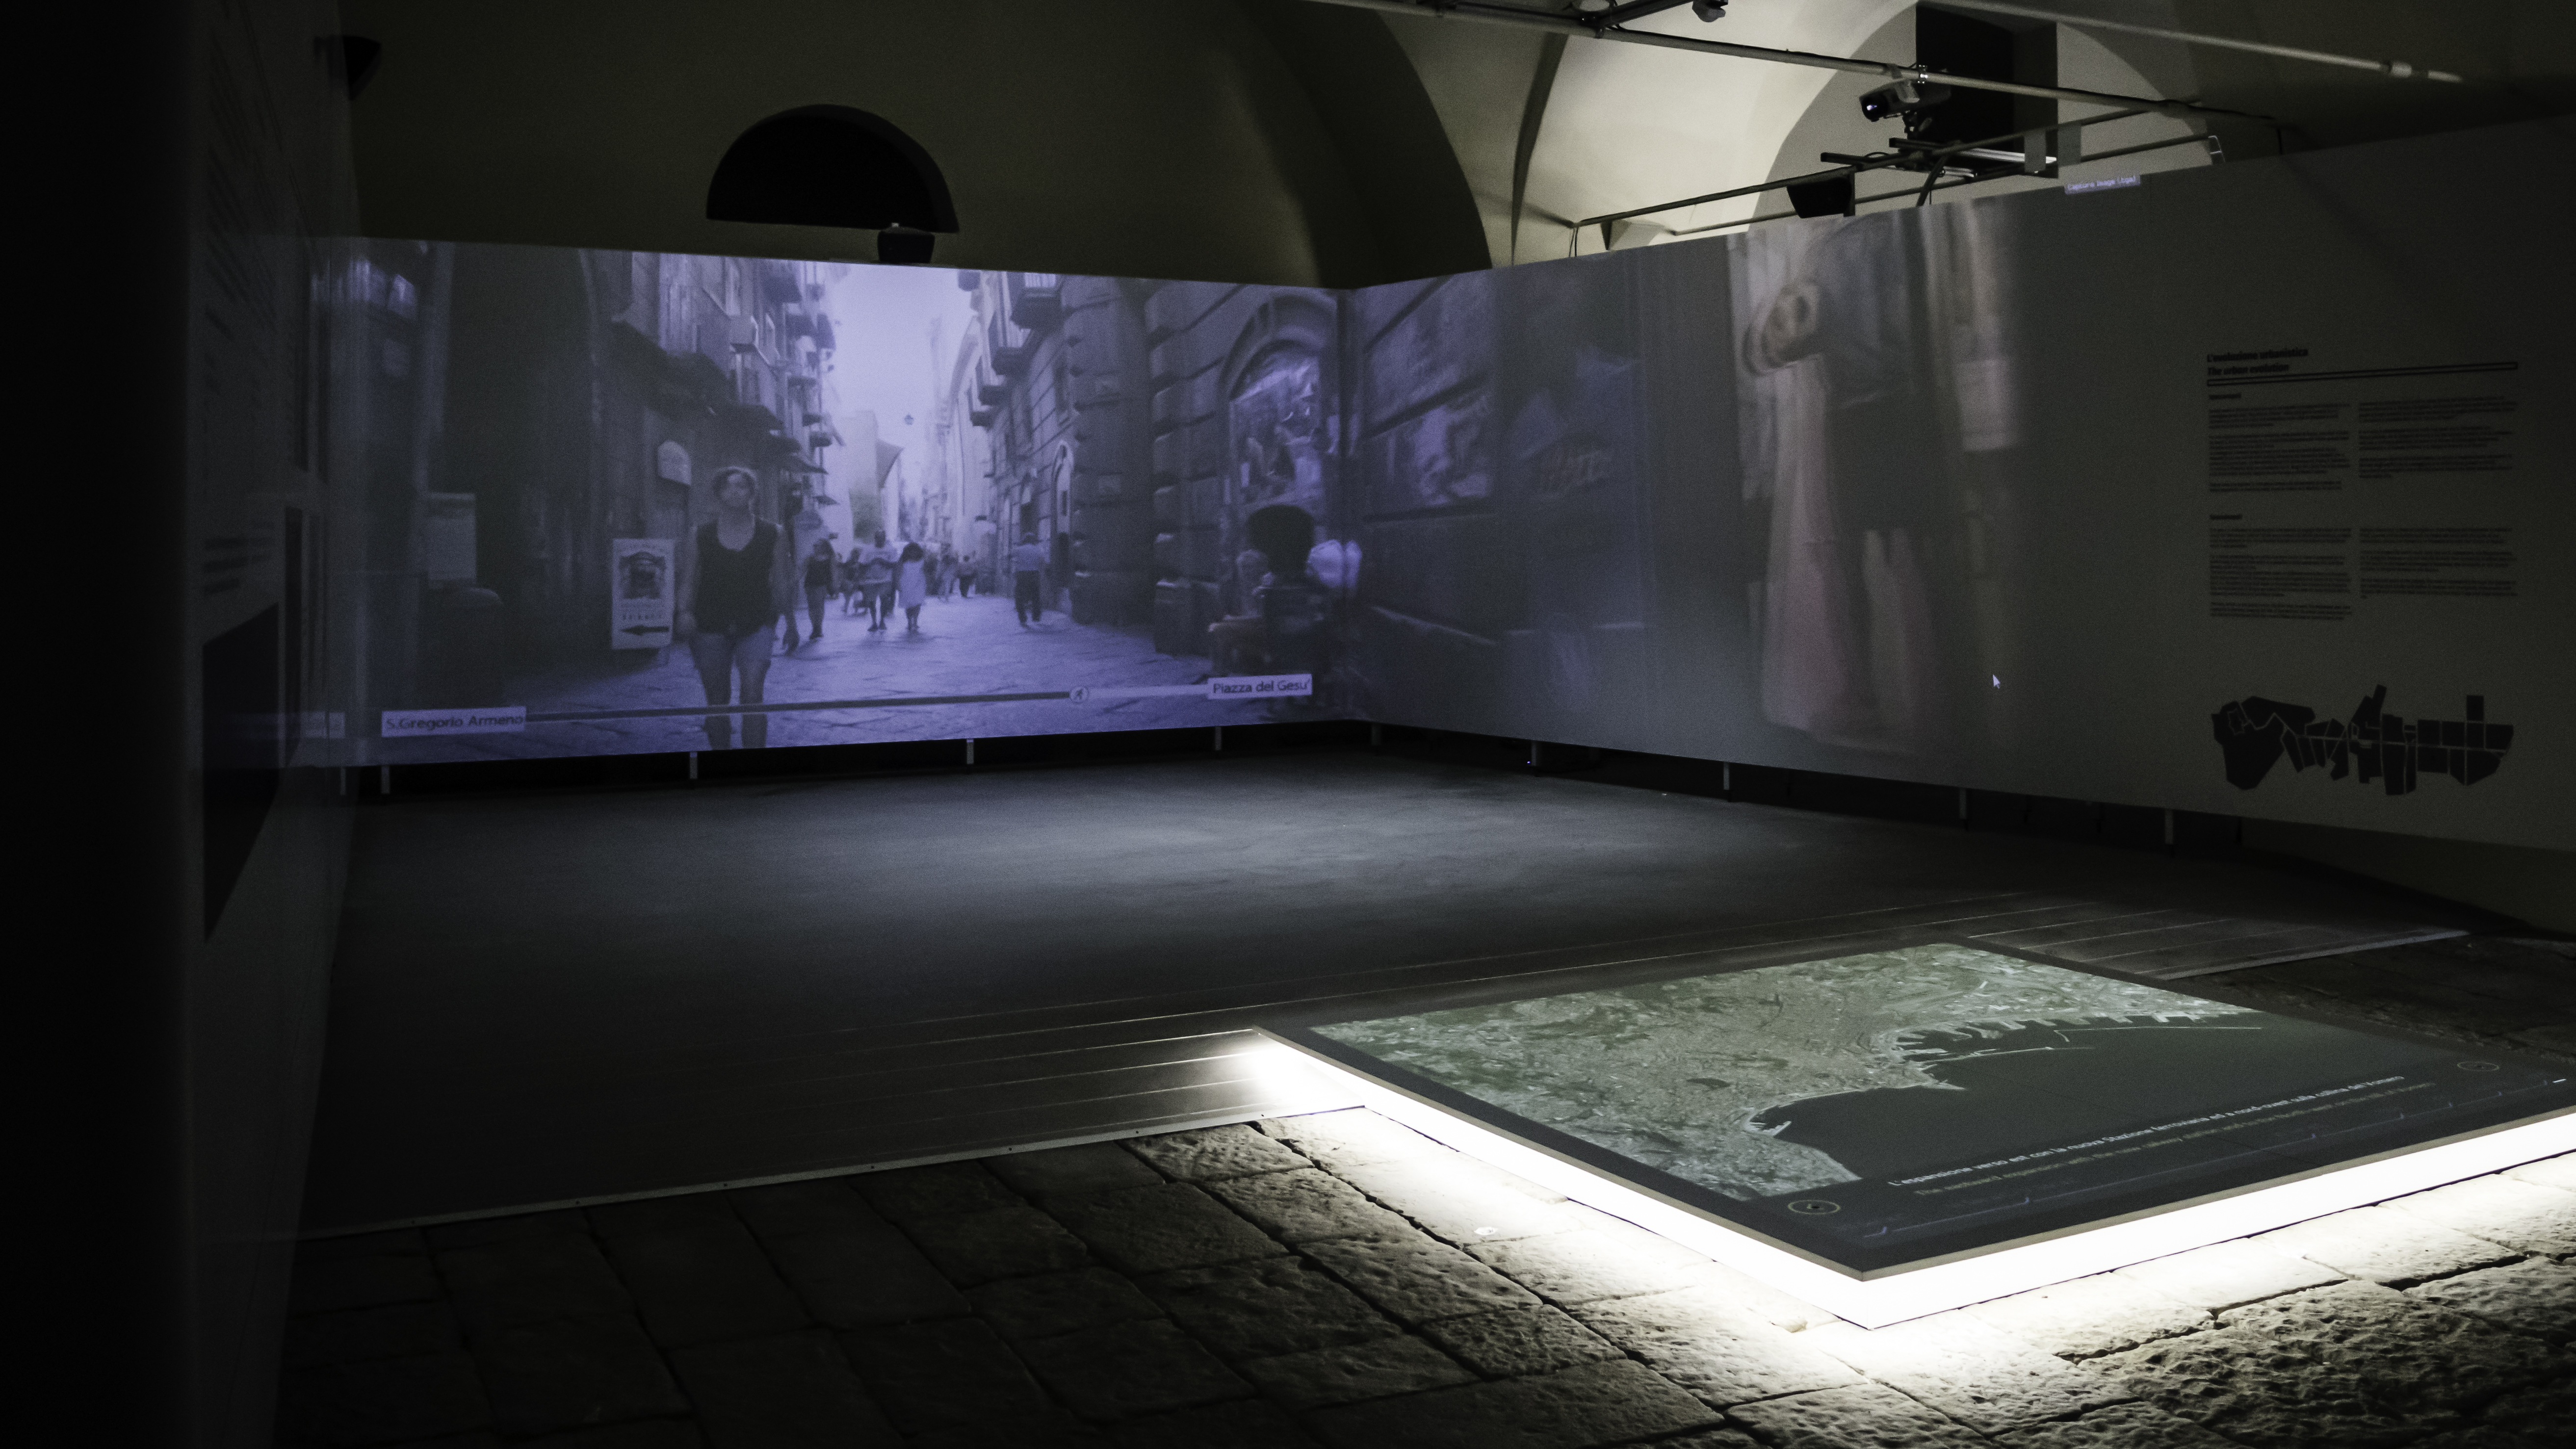 Spaccanapoli Immersive Walk at the Palazzo Reale Museum